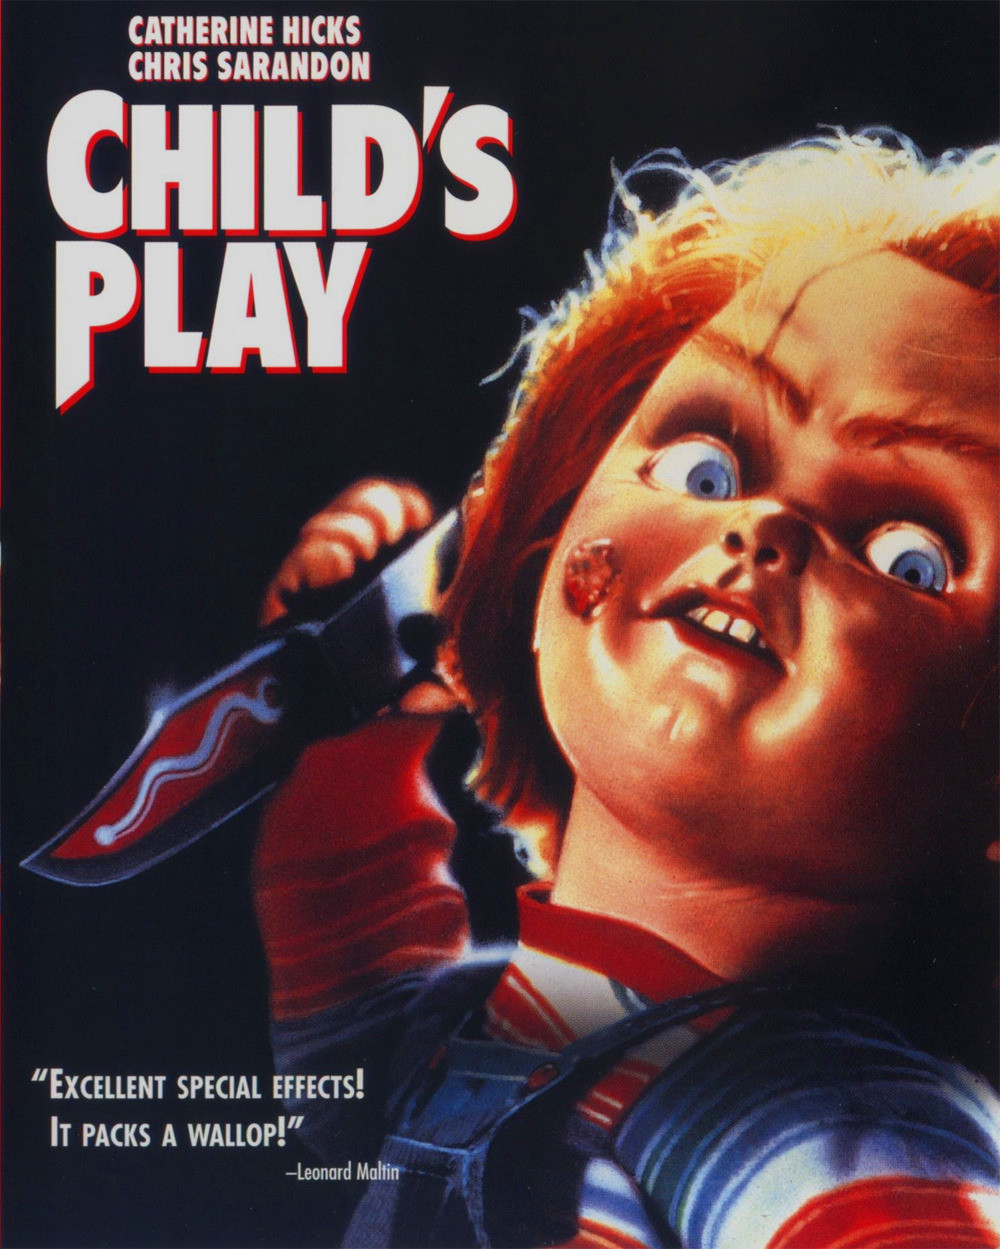 Child's Play (1988) - Directed by: Tom HollandStarring: Catherine Hicks, Chris Sarandon, Alex Vincent, Brad Dourif, Dinah ManoffRated: RRunning Time: 1 h 27 mTMM Score: 3 stars out of 5STRENGTHS: It's Pretty Funny, Some Special EffectsWEAKNESSES: Wildly Inept Characters, Giant Leaps in Logic, Silly Story, Pacing